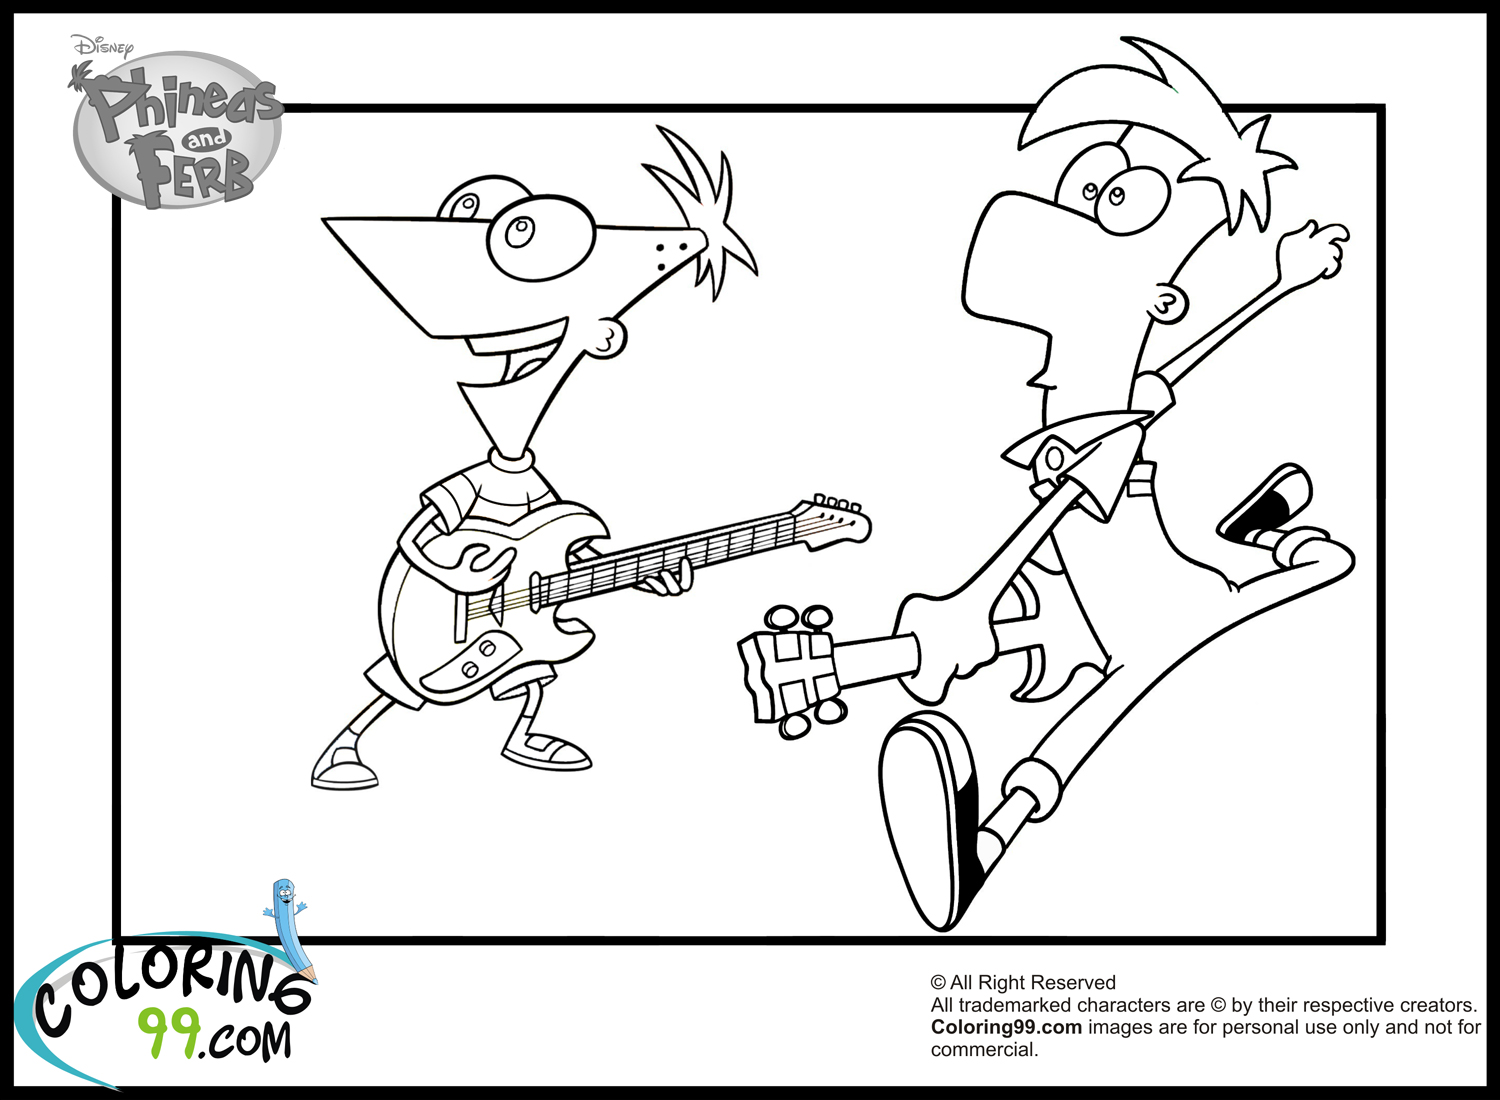 Phineas And Ferb Guitar: Phineas And Ferb Coloring Pages